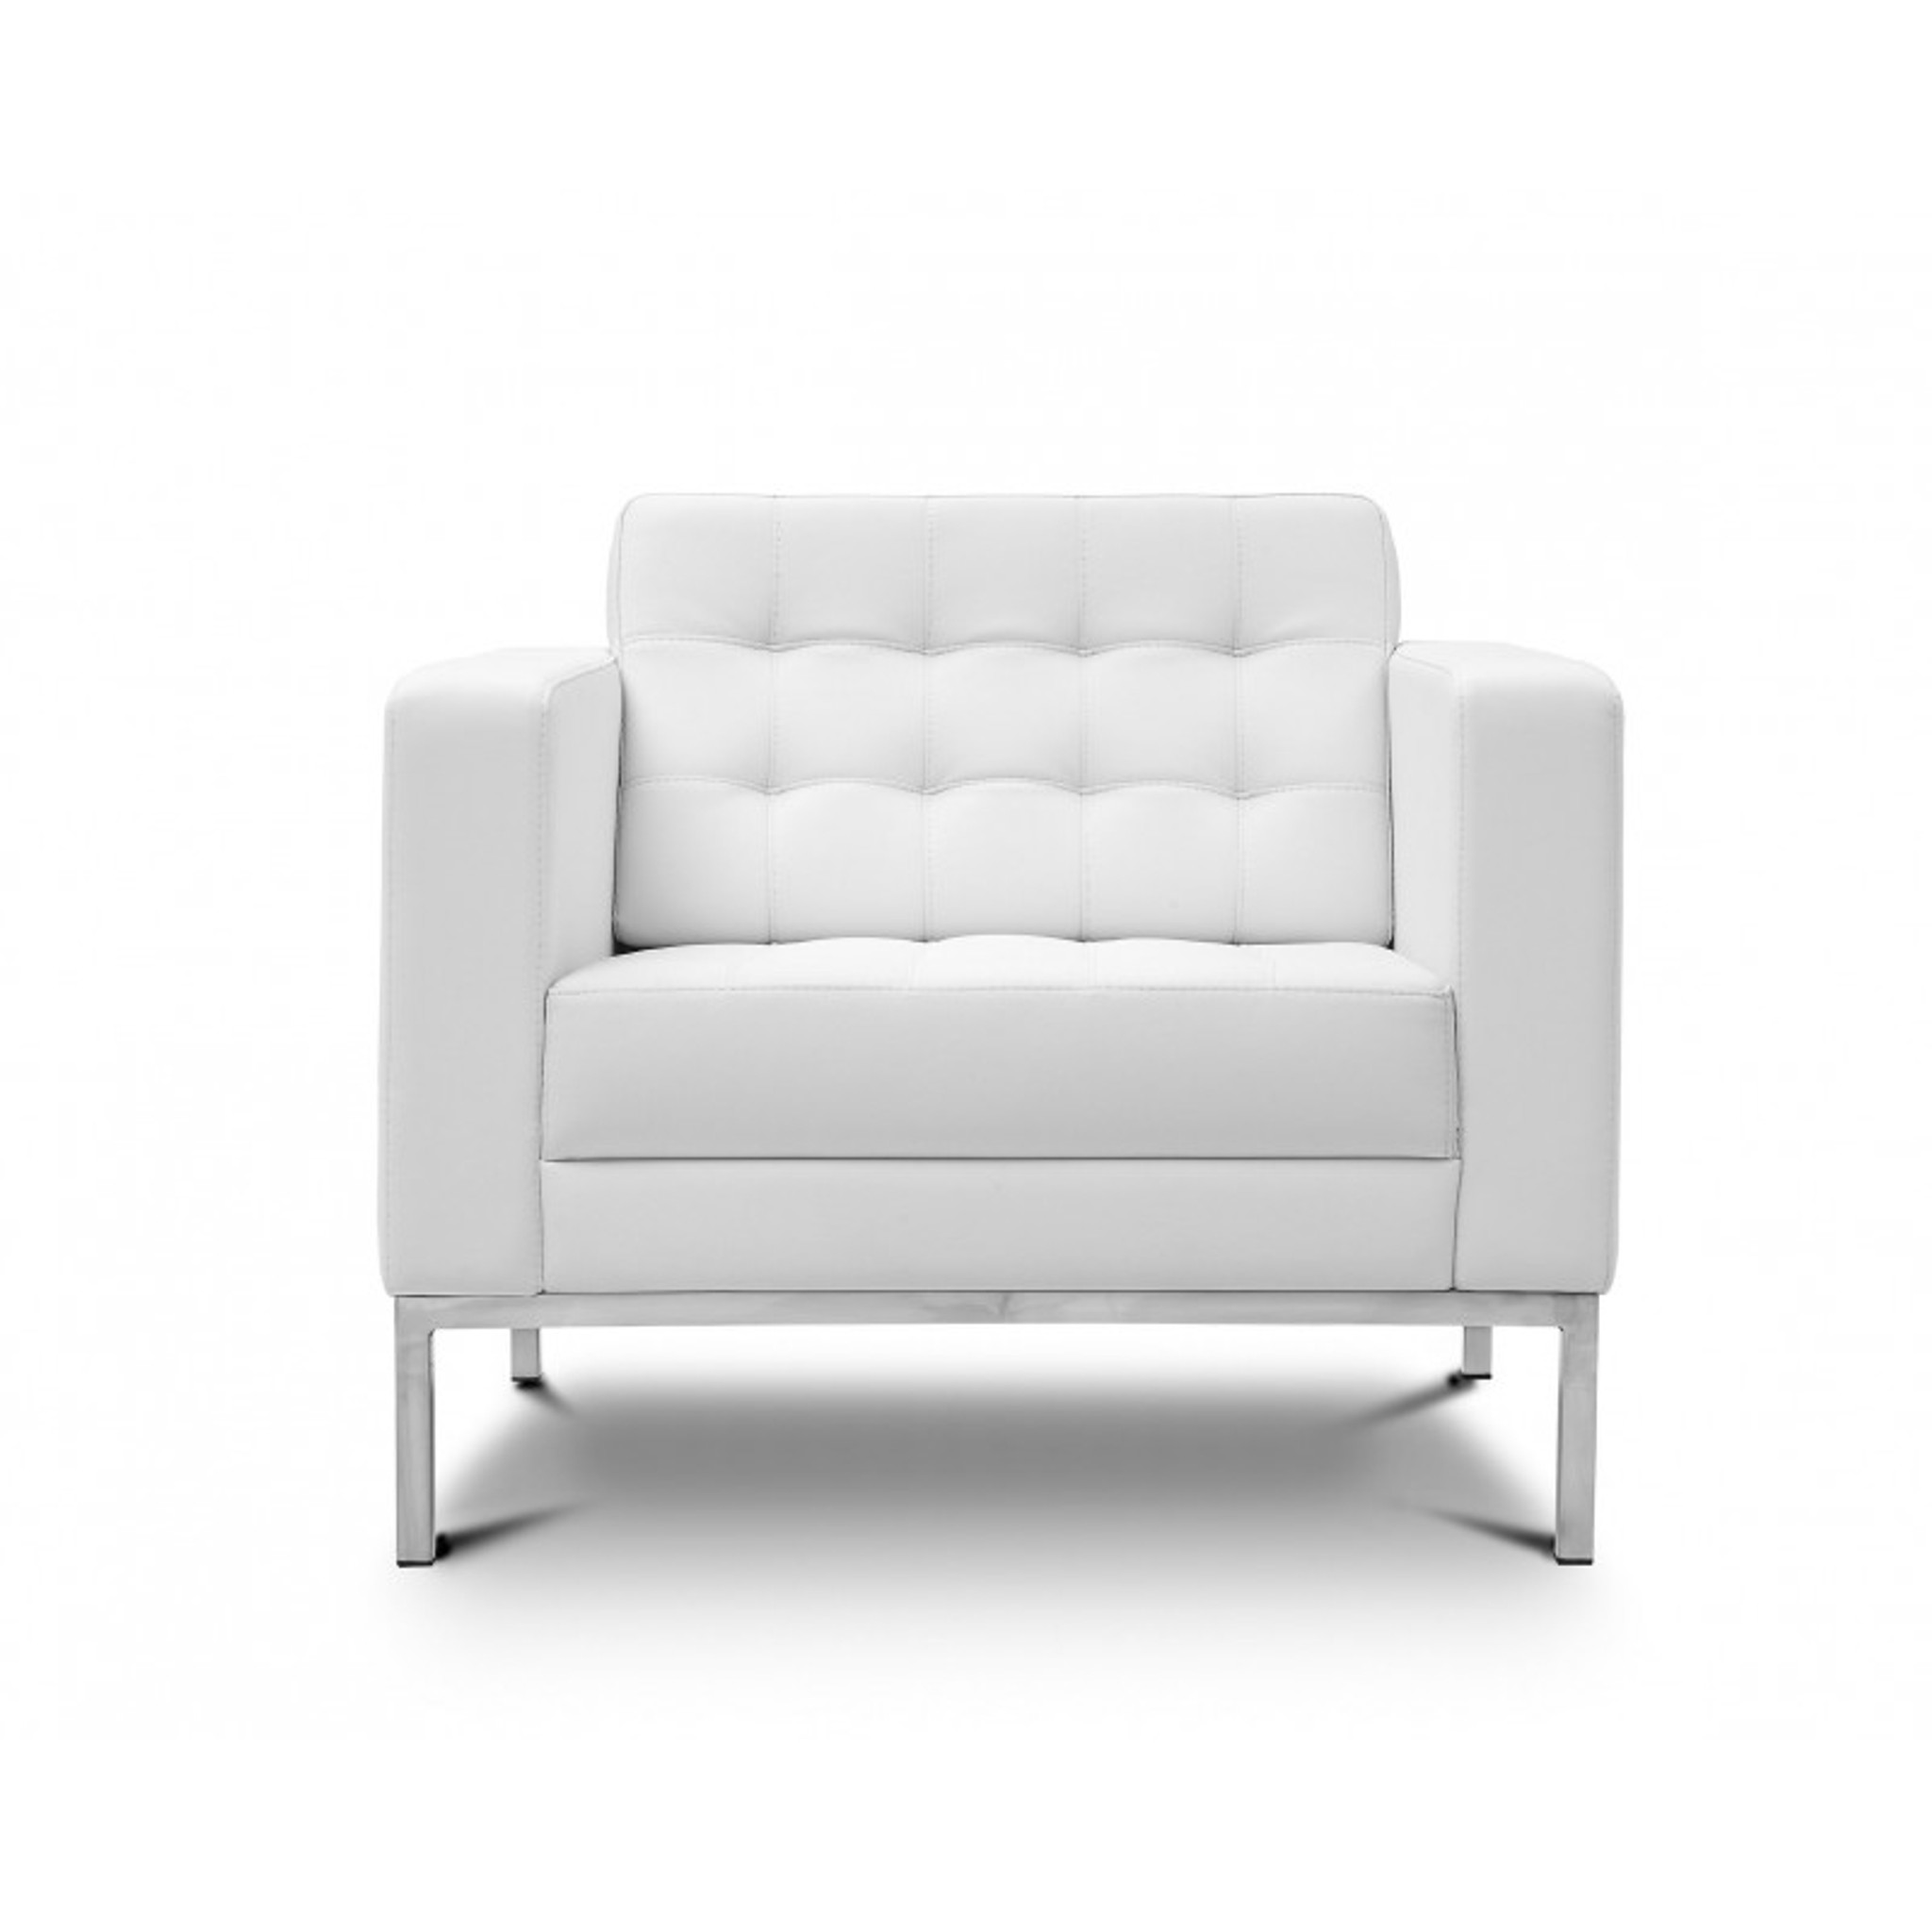 Piazza White Leather Lounge Chair  sc 1 st  Orlando Office Furniture & Piazza White Leather Lounge Chair - Orlando Office Furniture